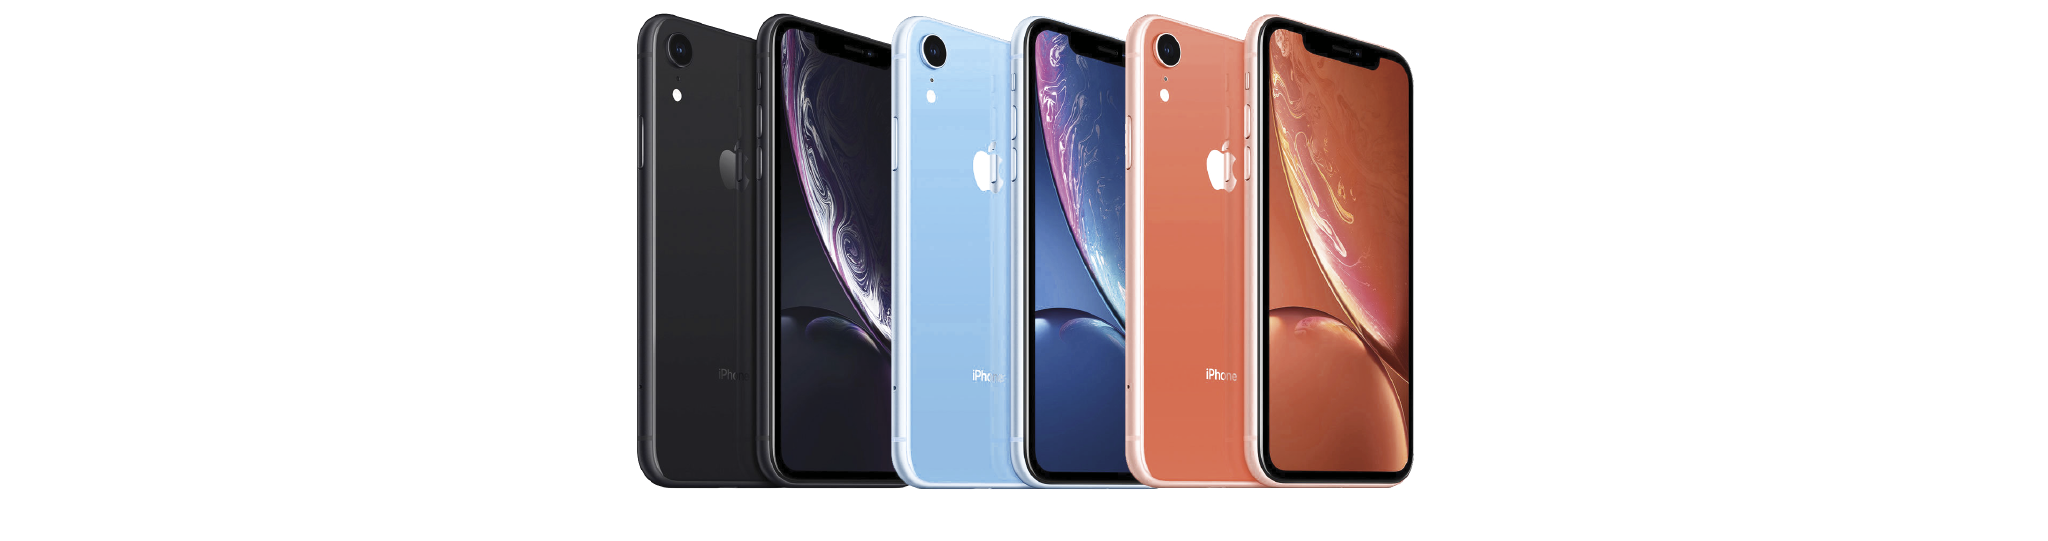 iPhone XR Buy One Get One Free. $750 Value